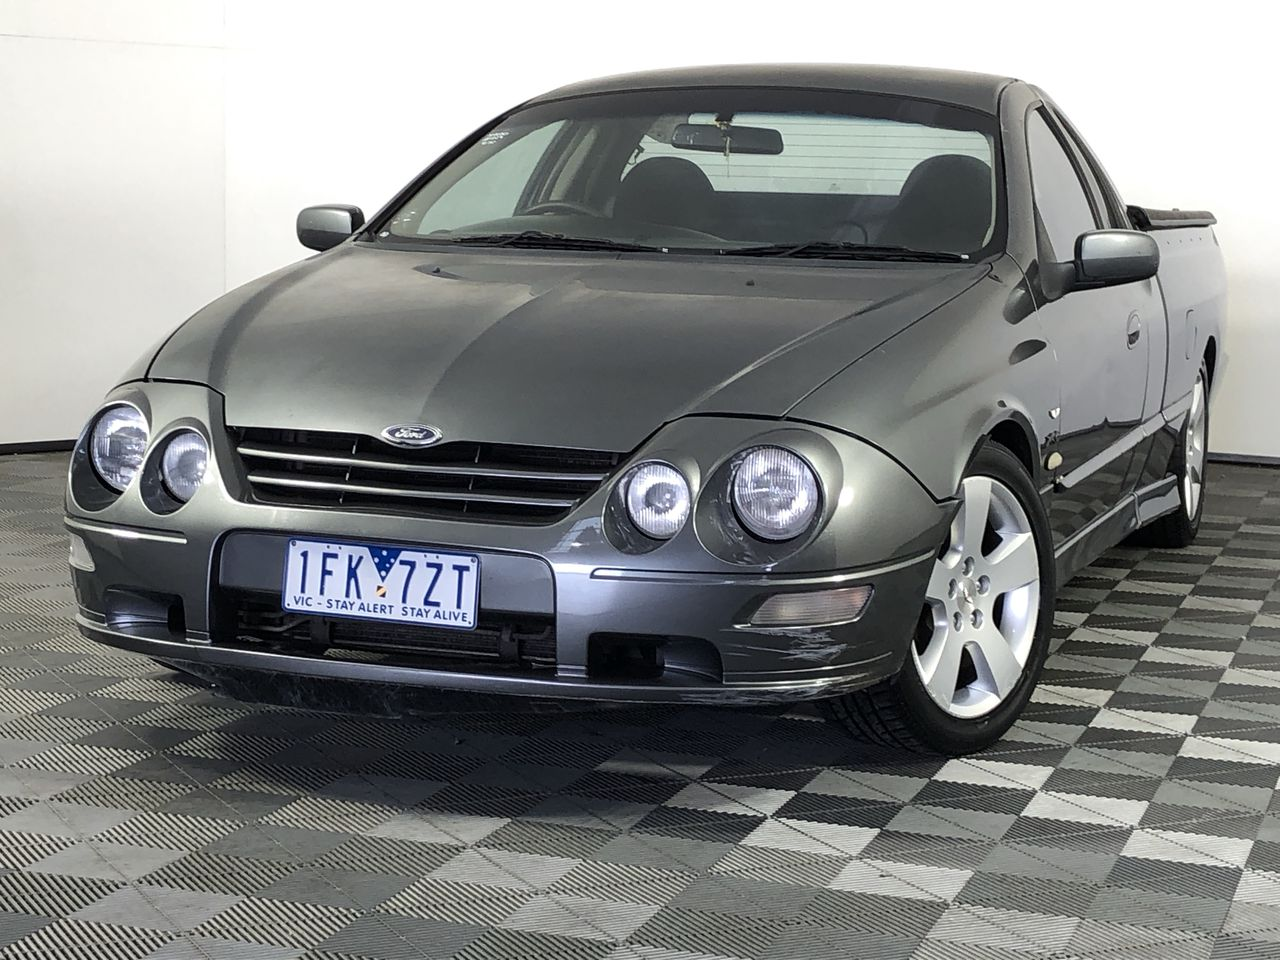 2002 Ford Falcon XR6 VCT PURSUIT AUII Automatic Ute